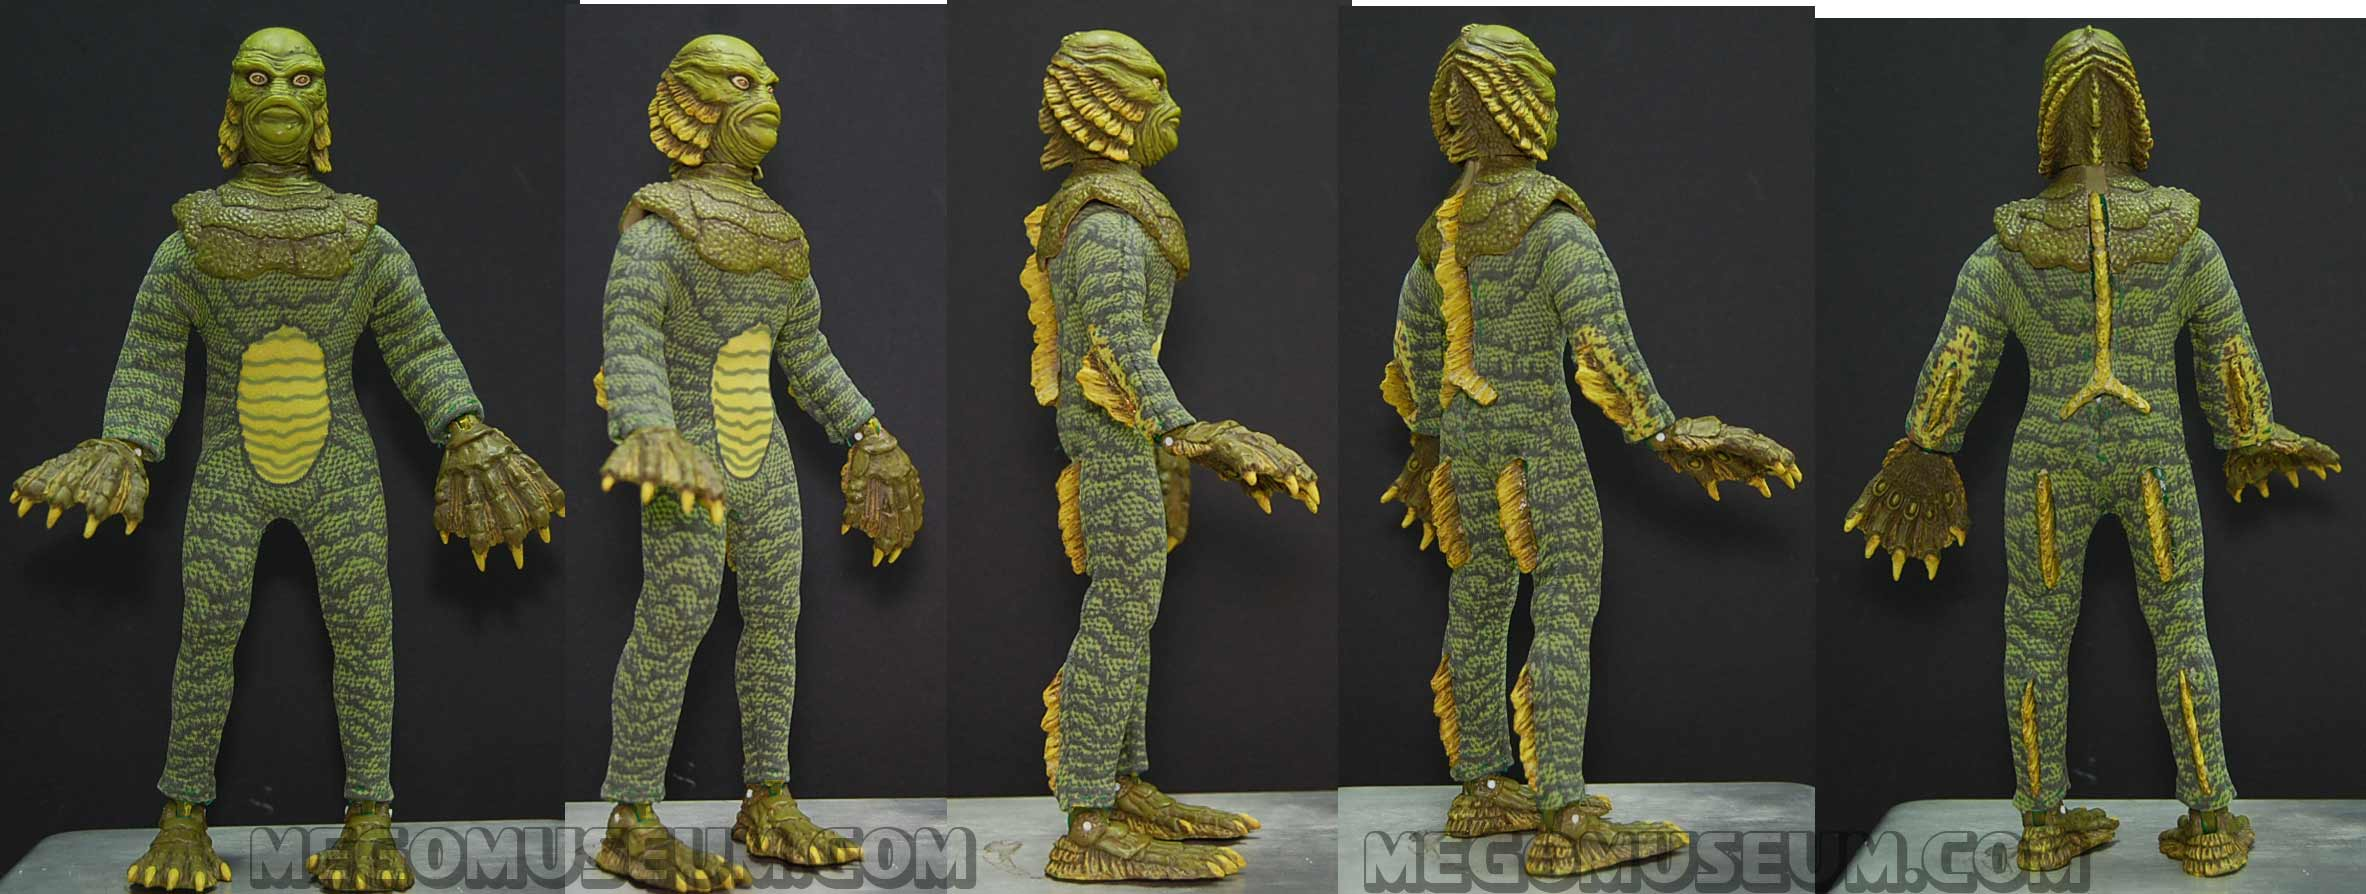 The Creature from the Black Lagoon: 360 | Mego Museum